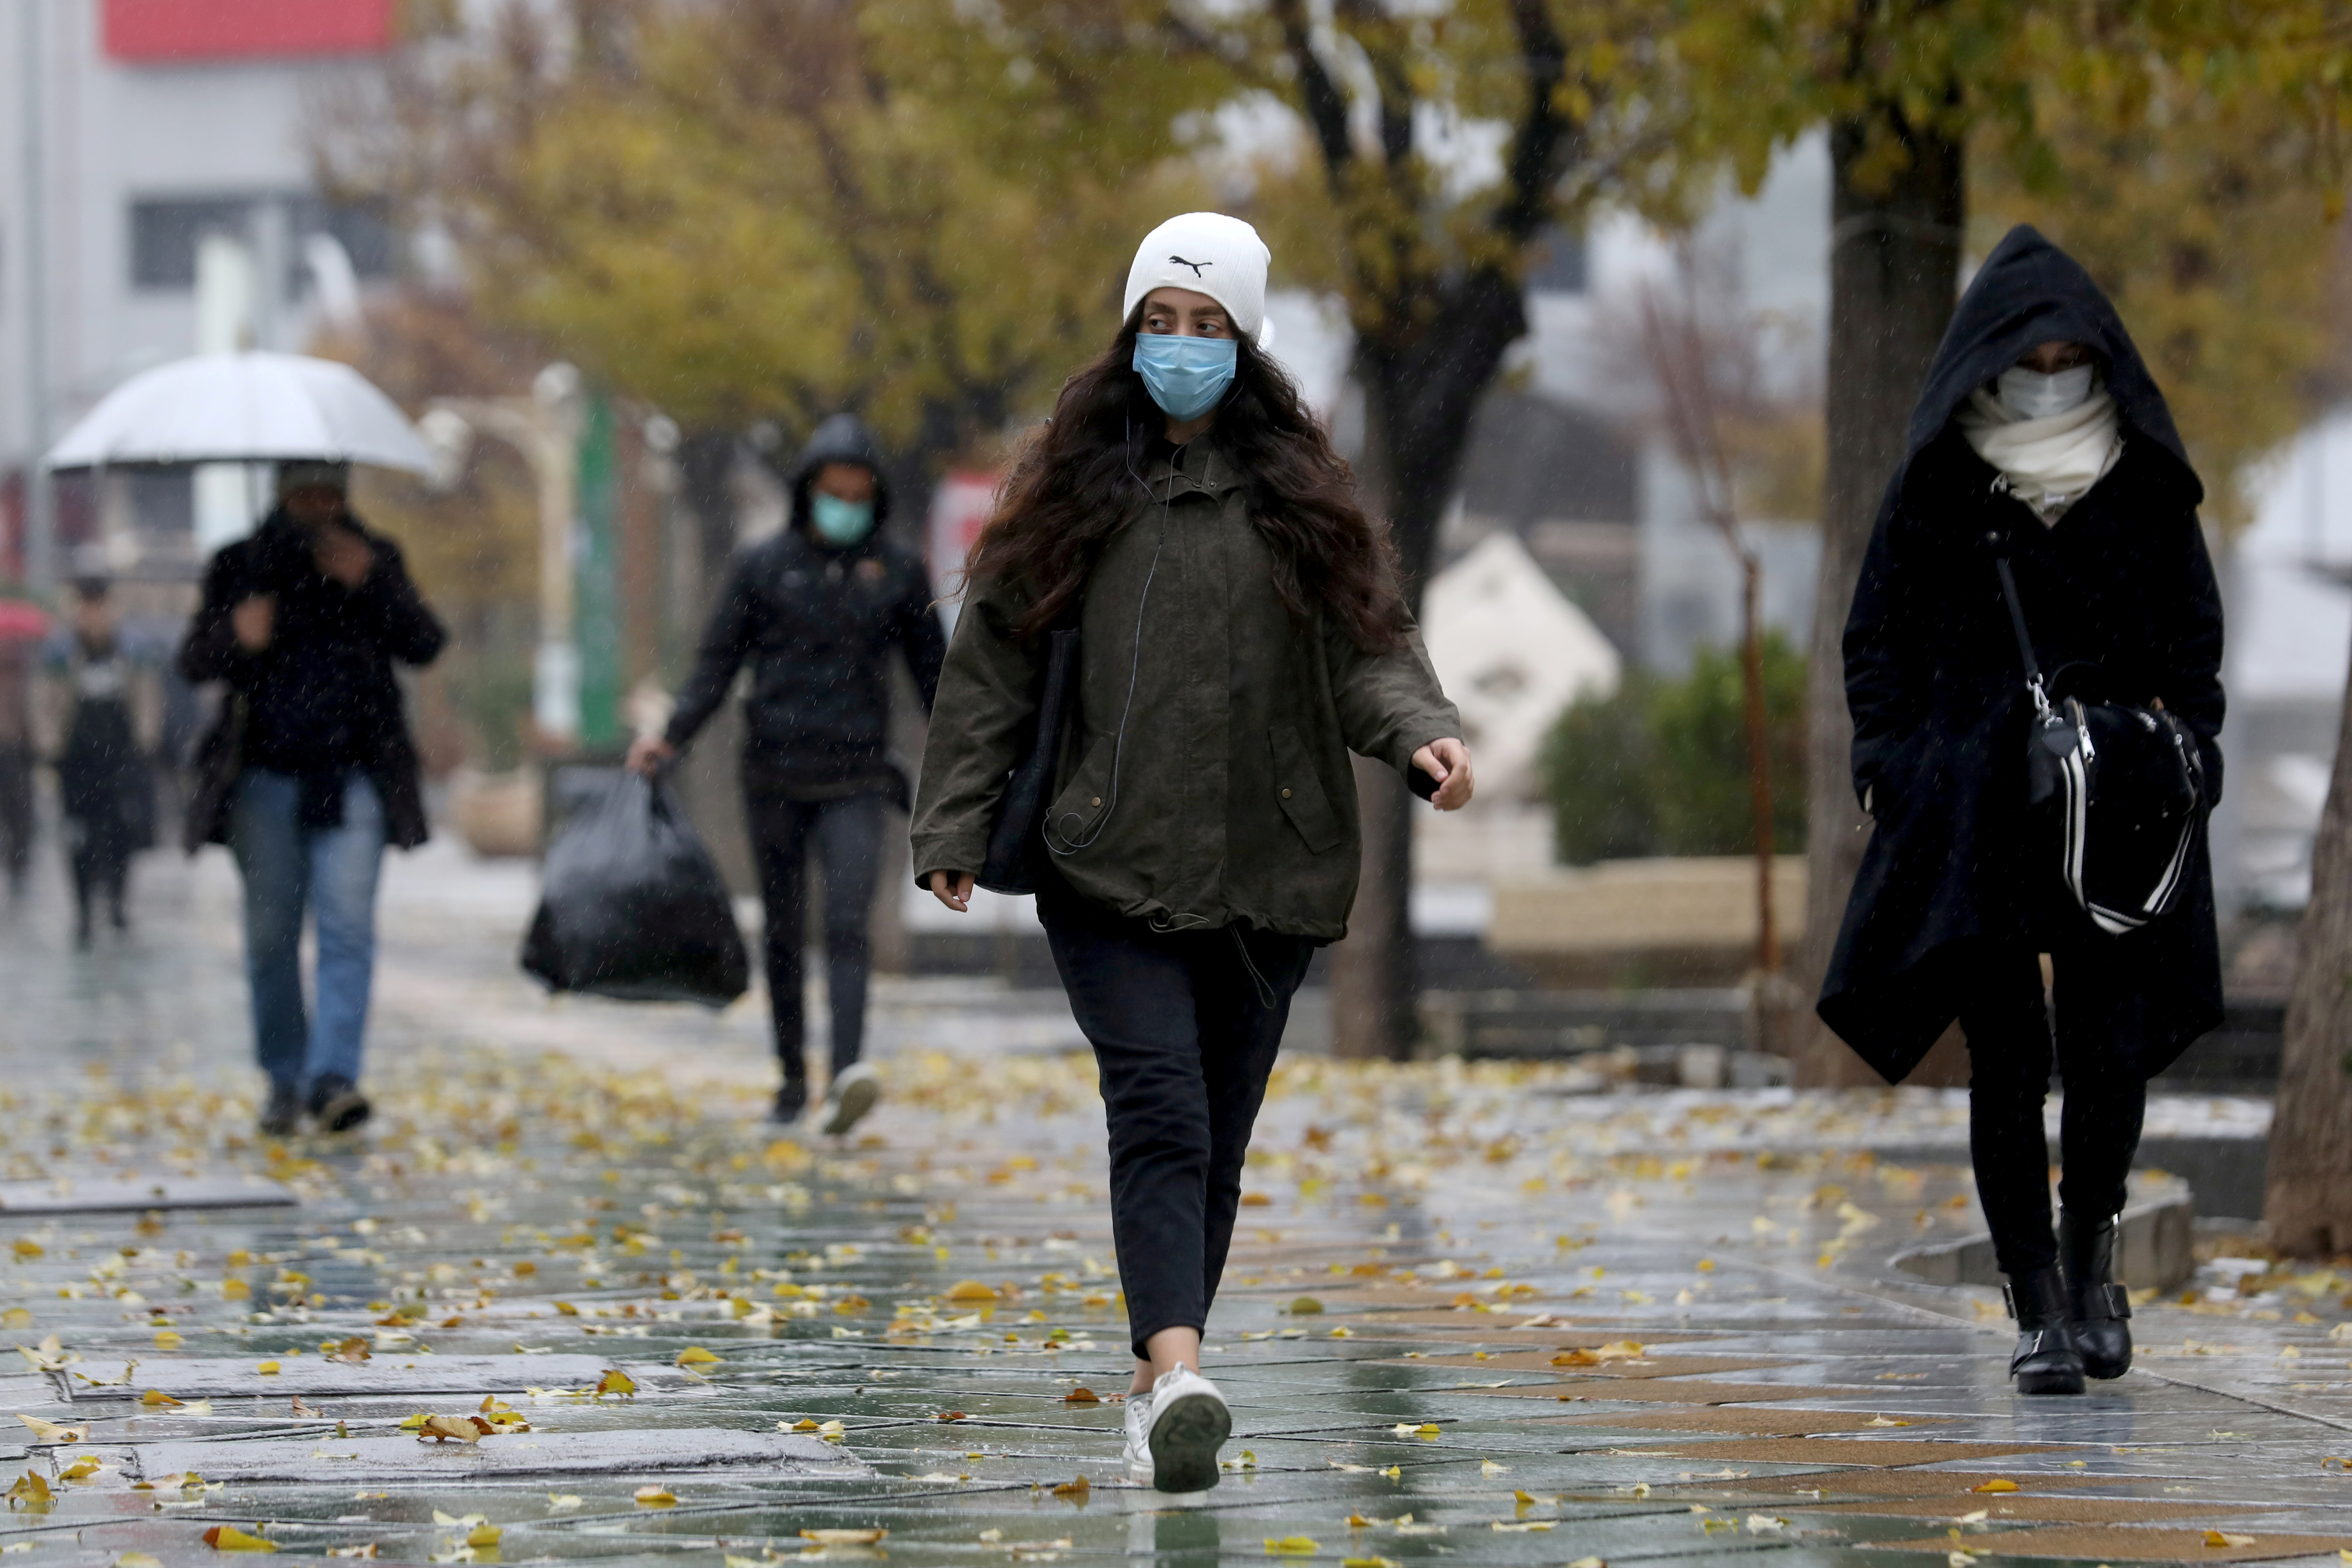 People walk on a street after Tehran reopened following a two-week shutdown,  Iran December 6, 2020. Majid Asgaripour/WANA (West Asia News Agency) via REUTERS